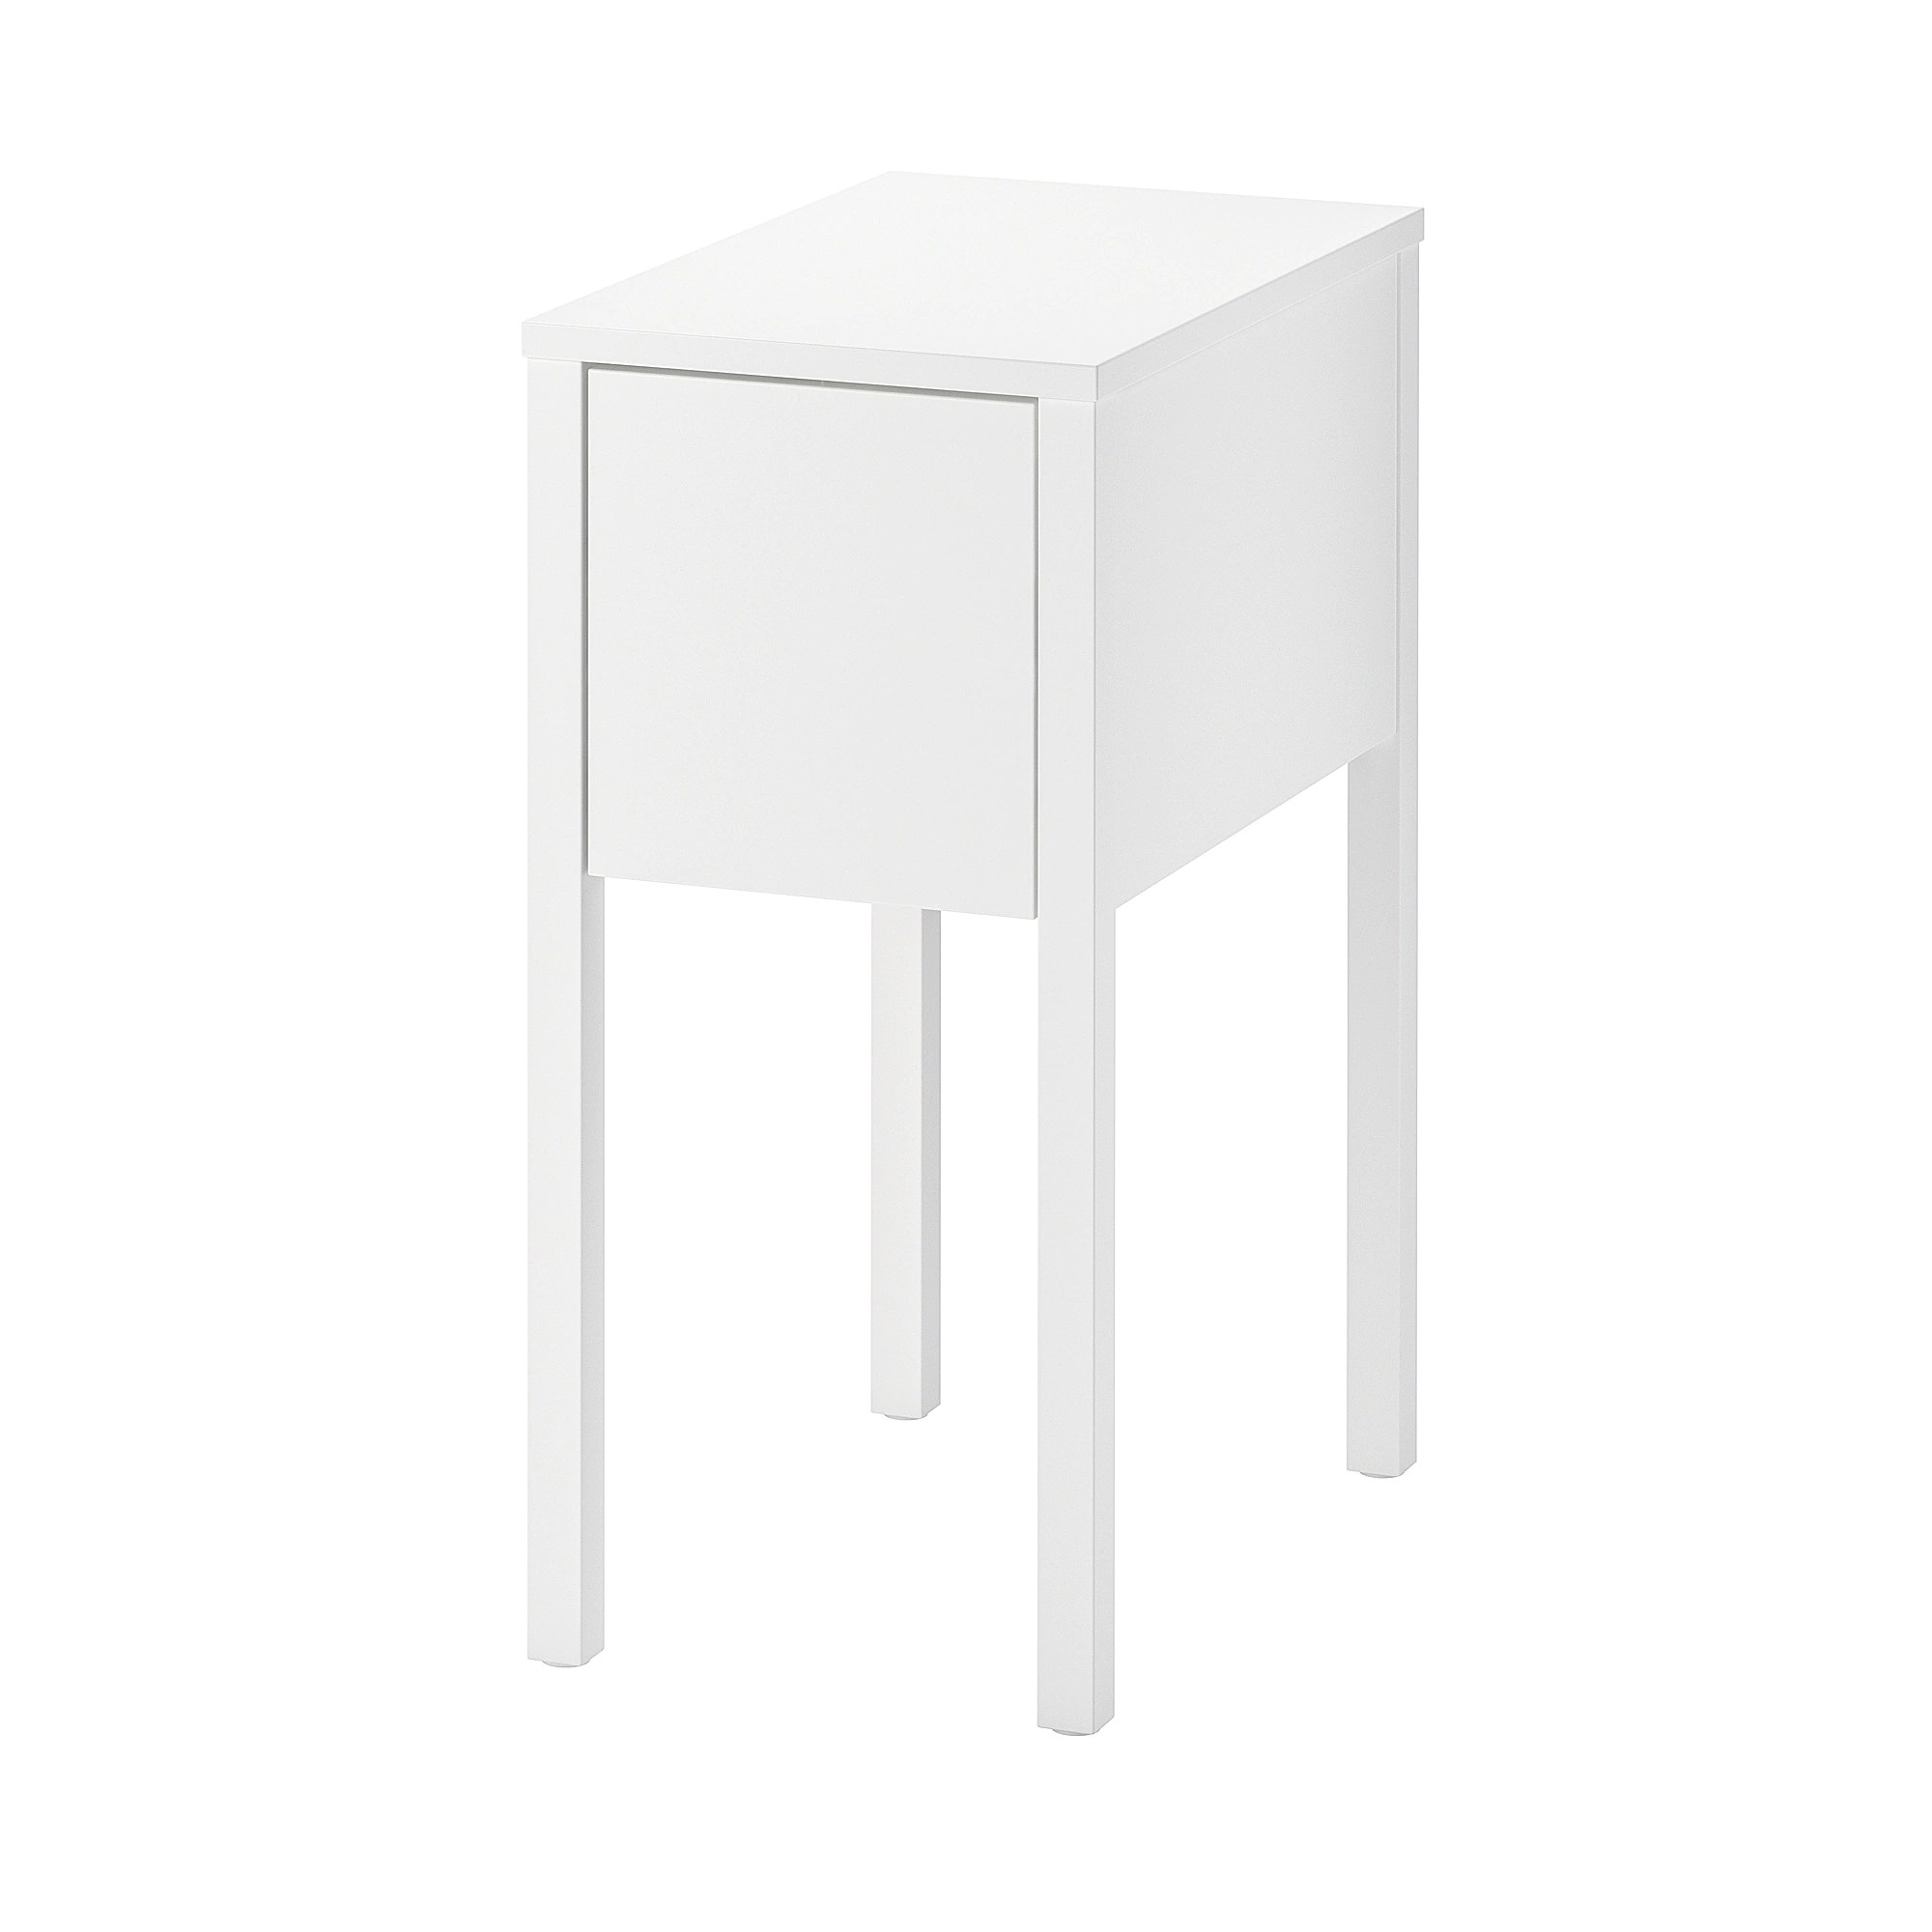 Ikea Table Nordli Nightstand White